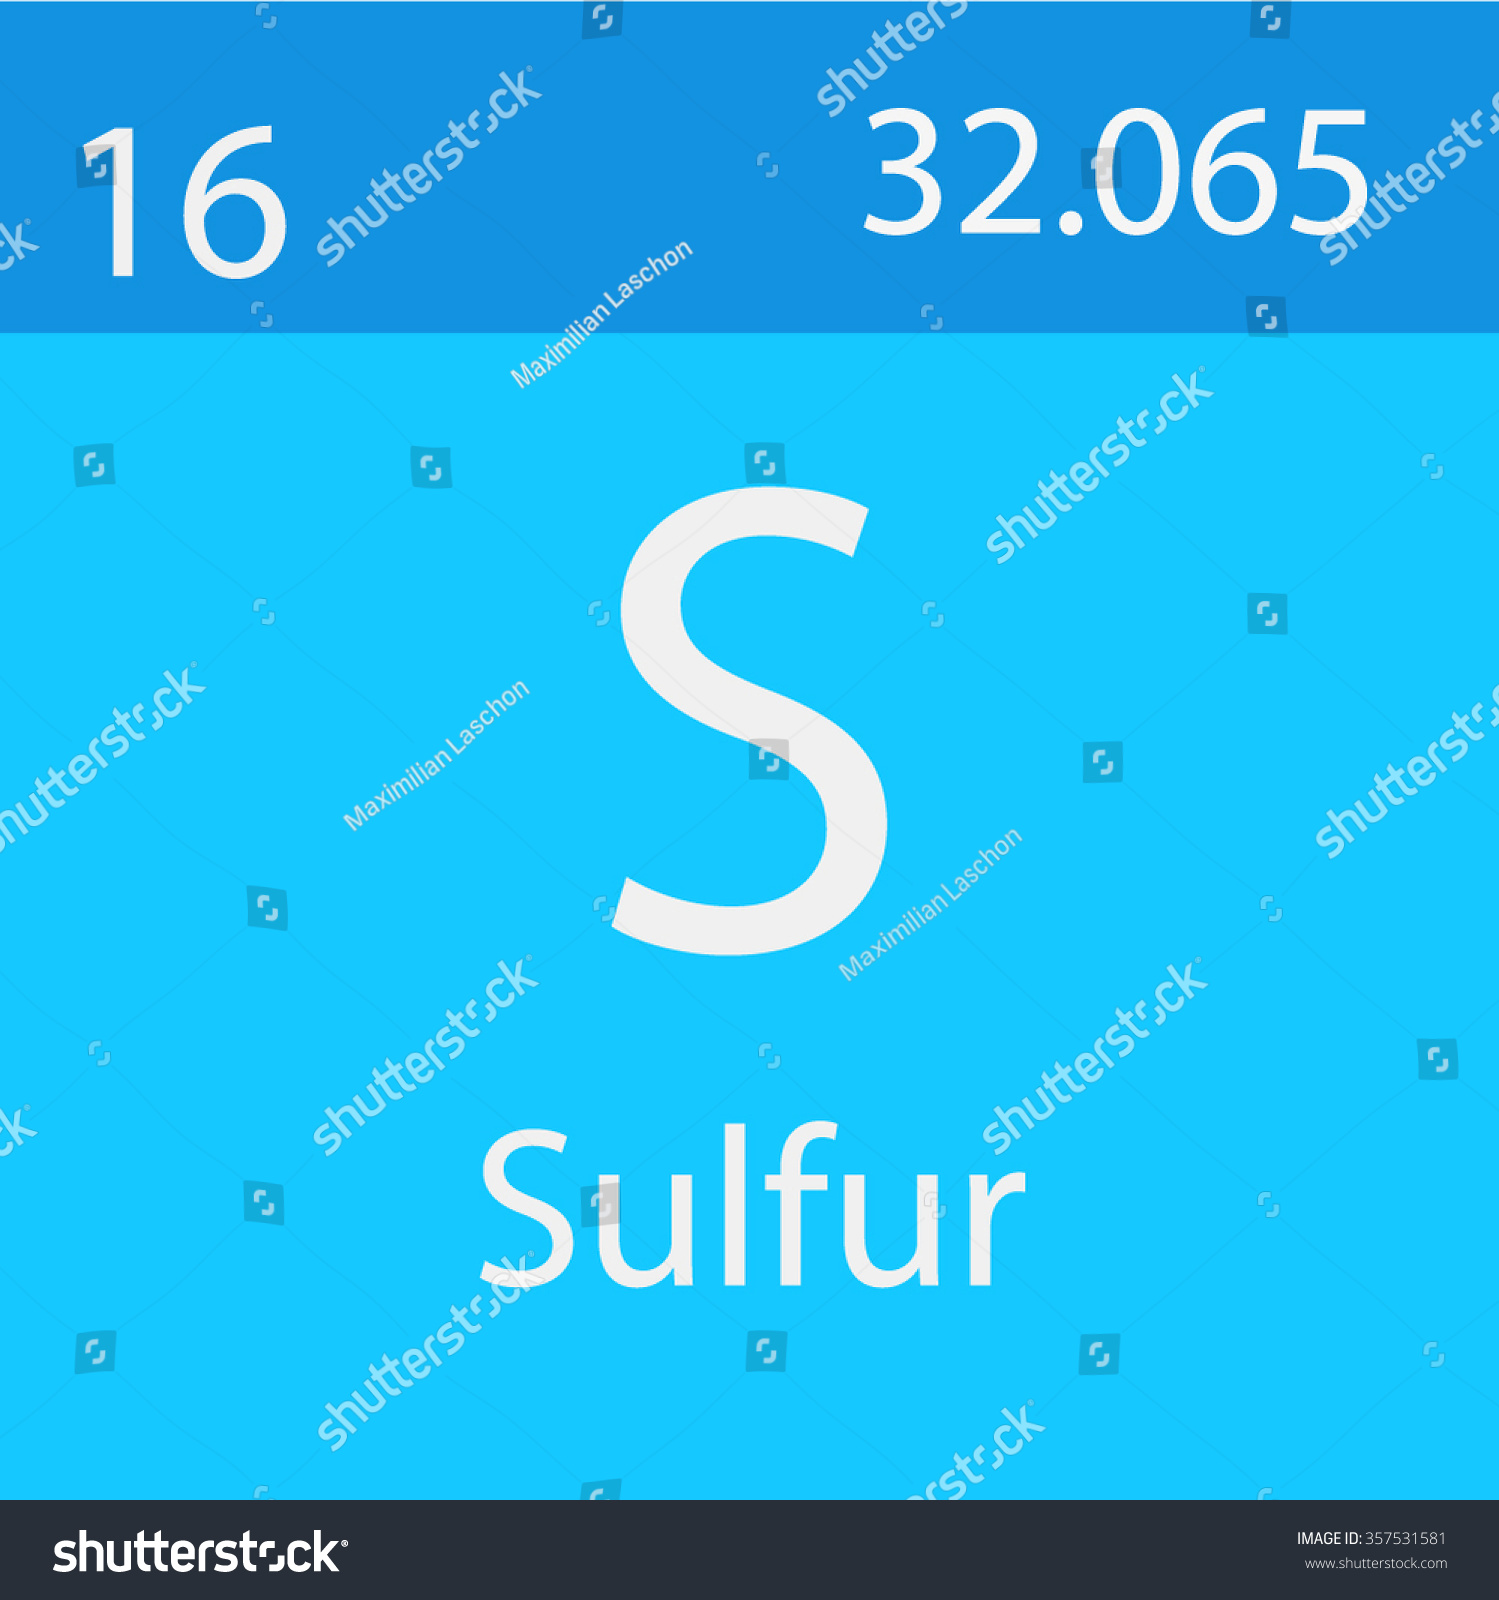 Sulfur Chemical Symbol Stock Vector Royalty Free 357531581